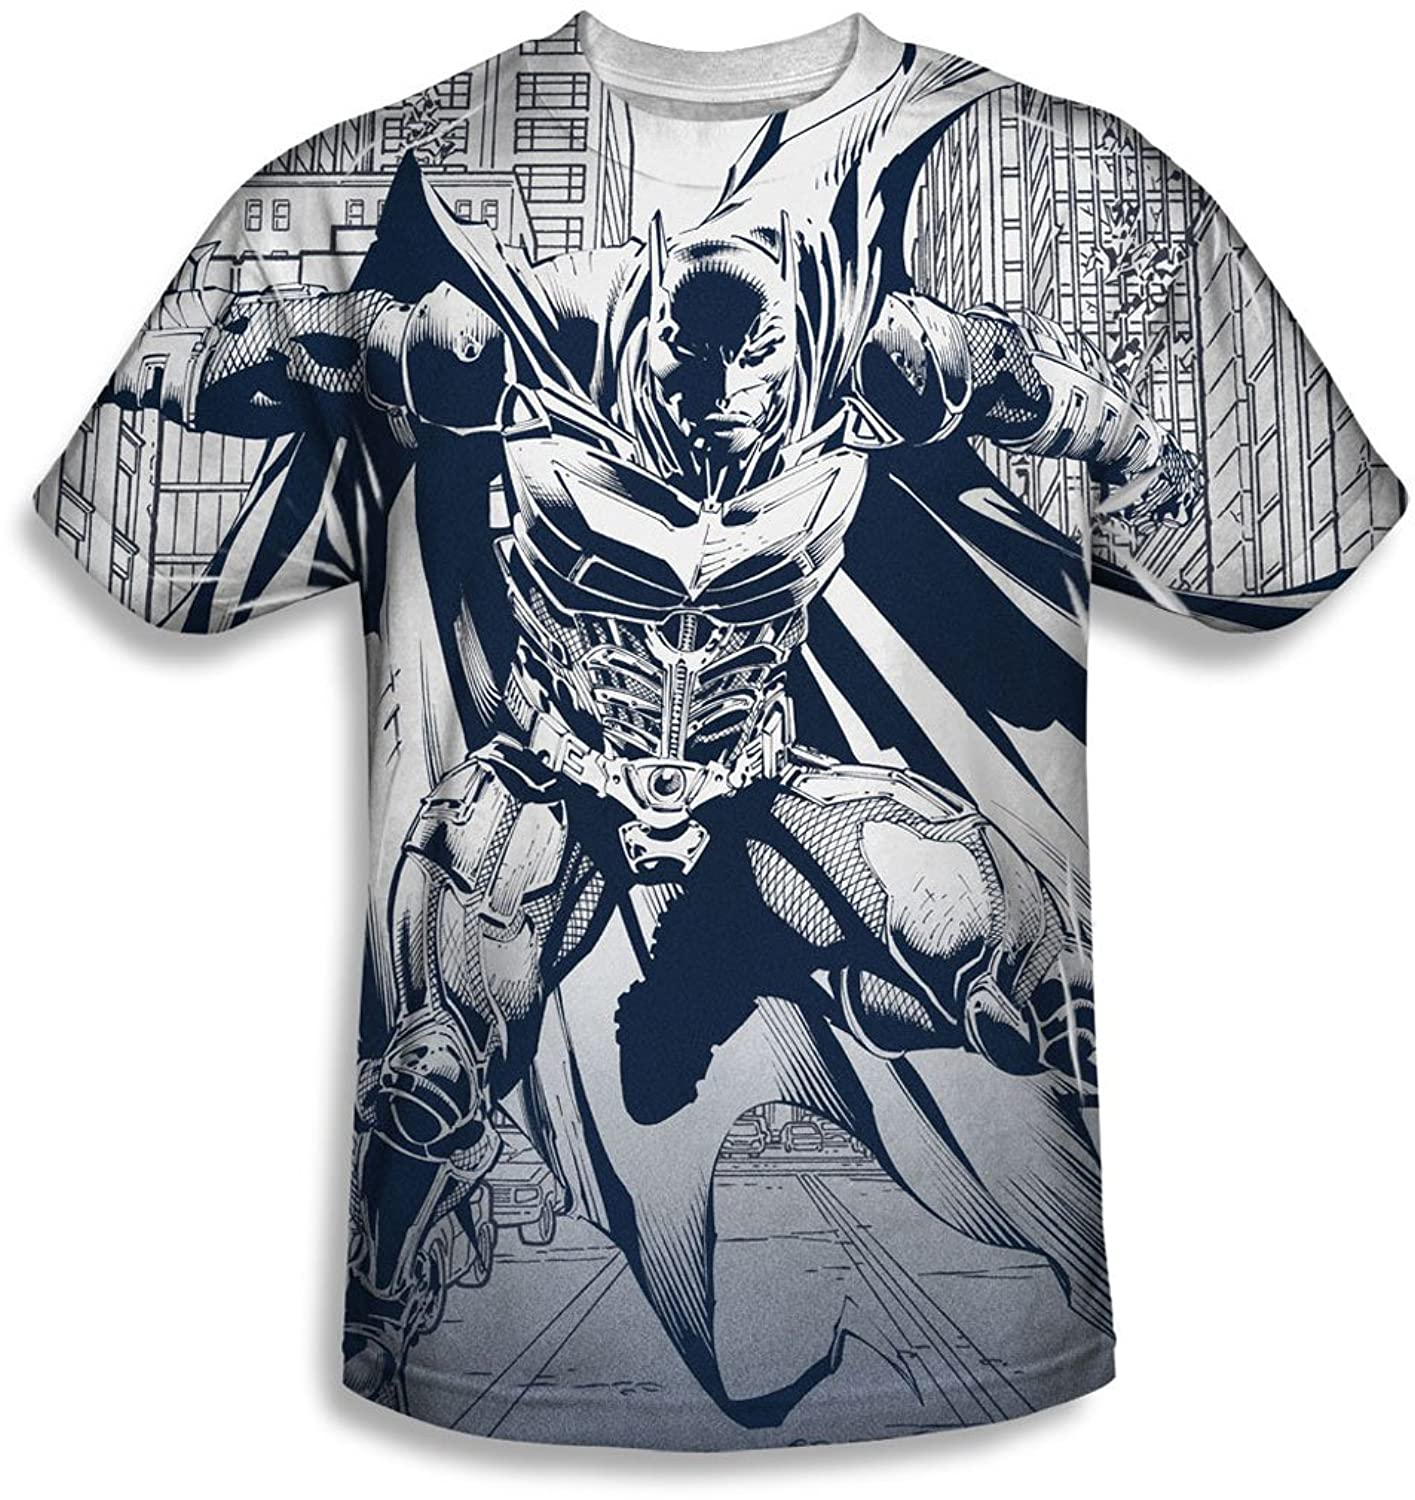 Batman: Dark Knight Rises - Youth Concept Justice T-Shirt